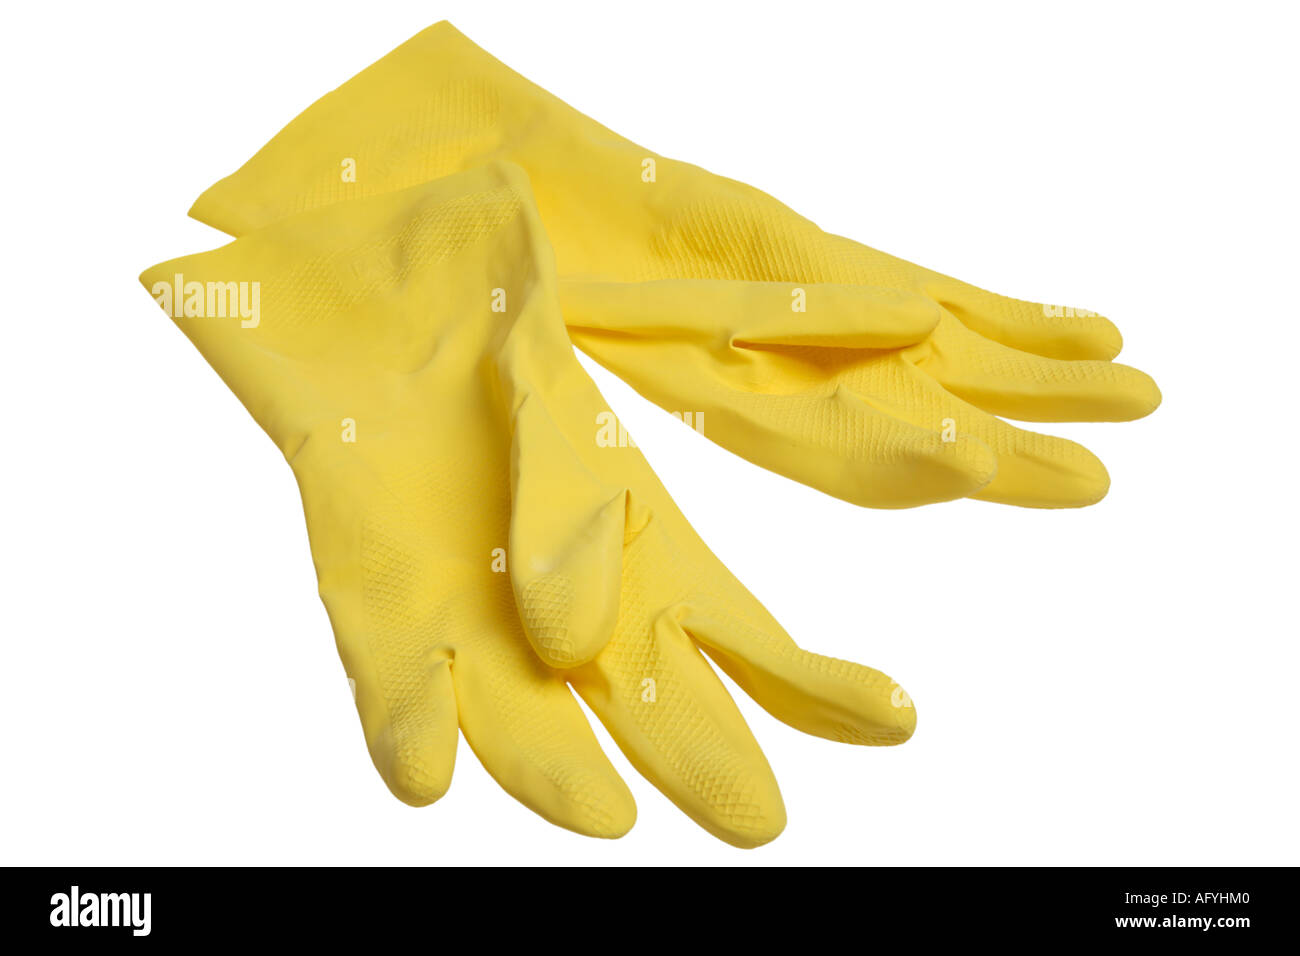 Yellow Rubber Gloves - Stock Image